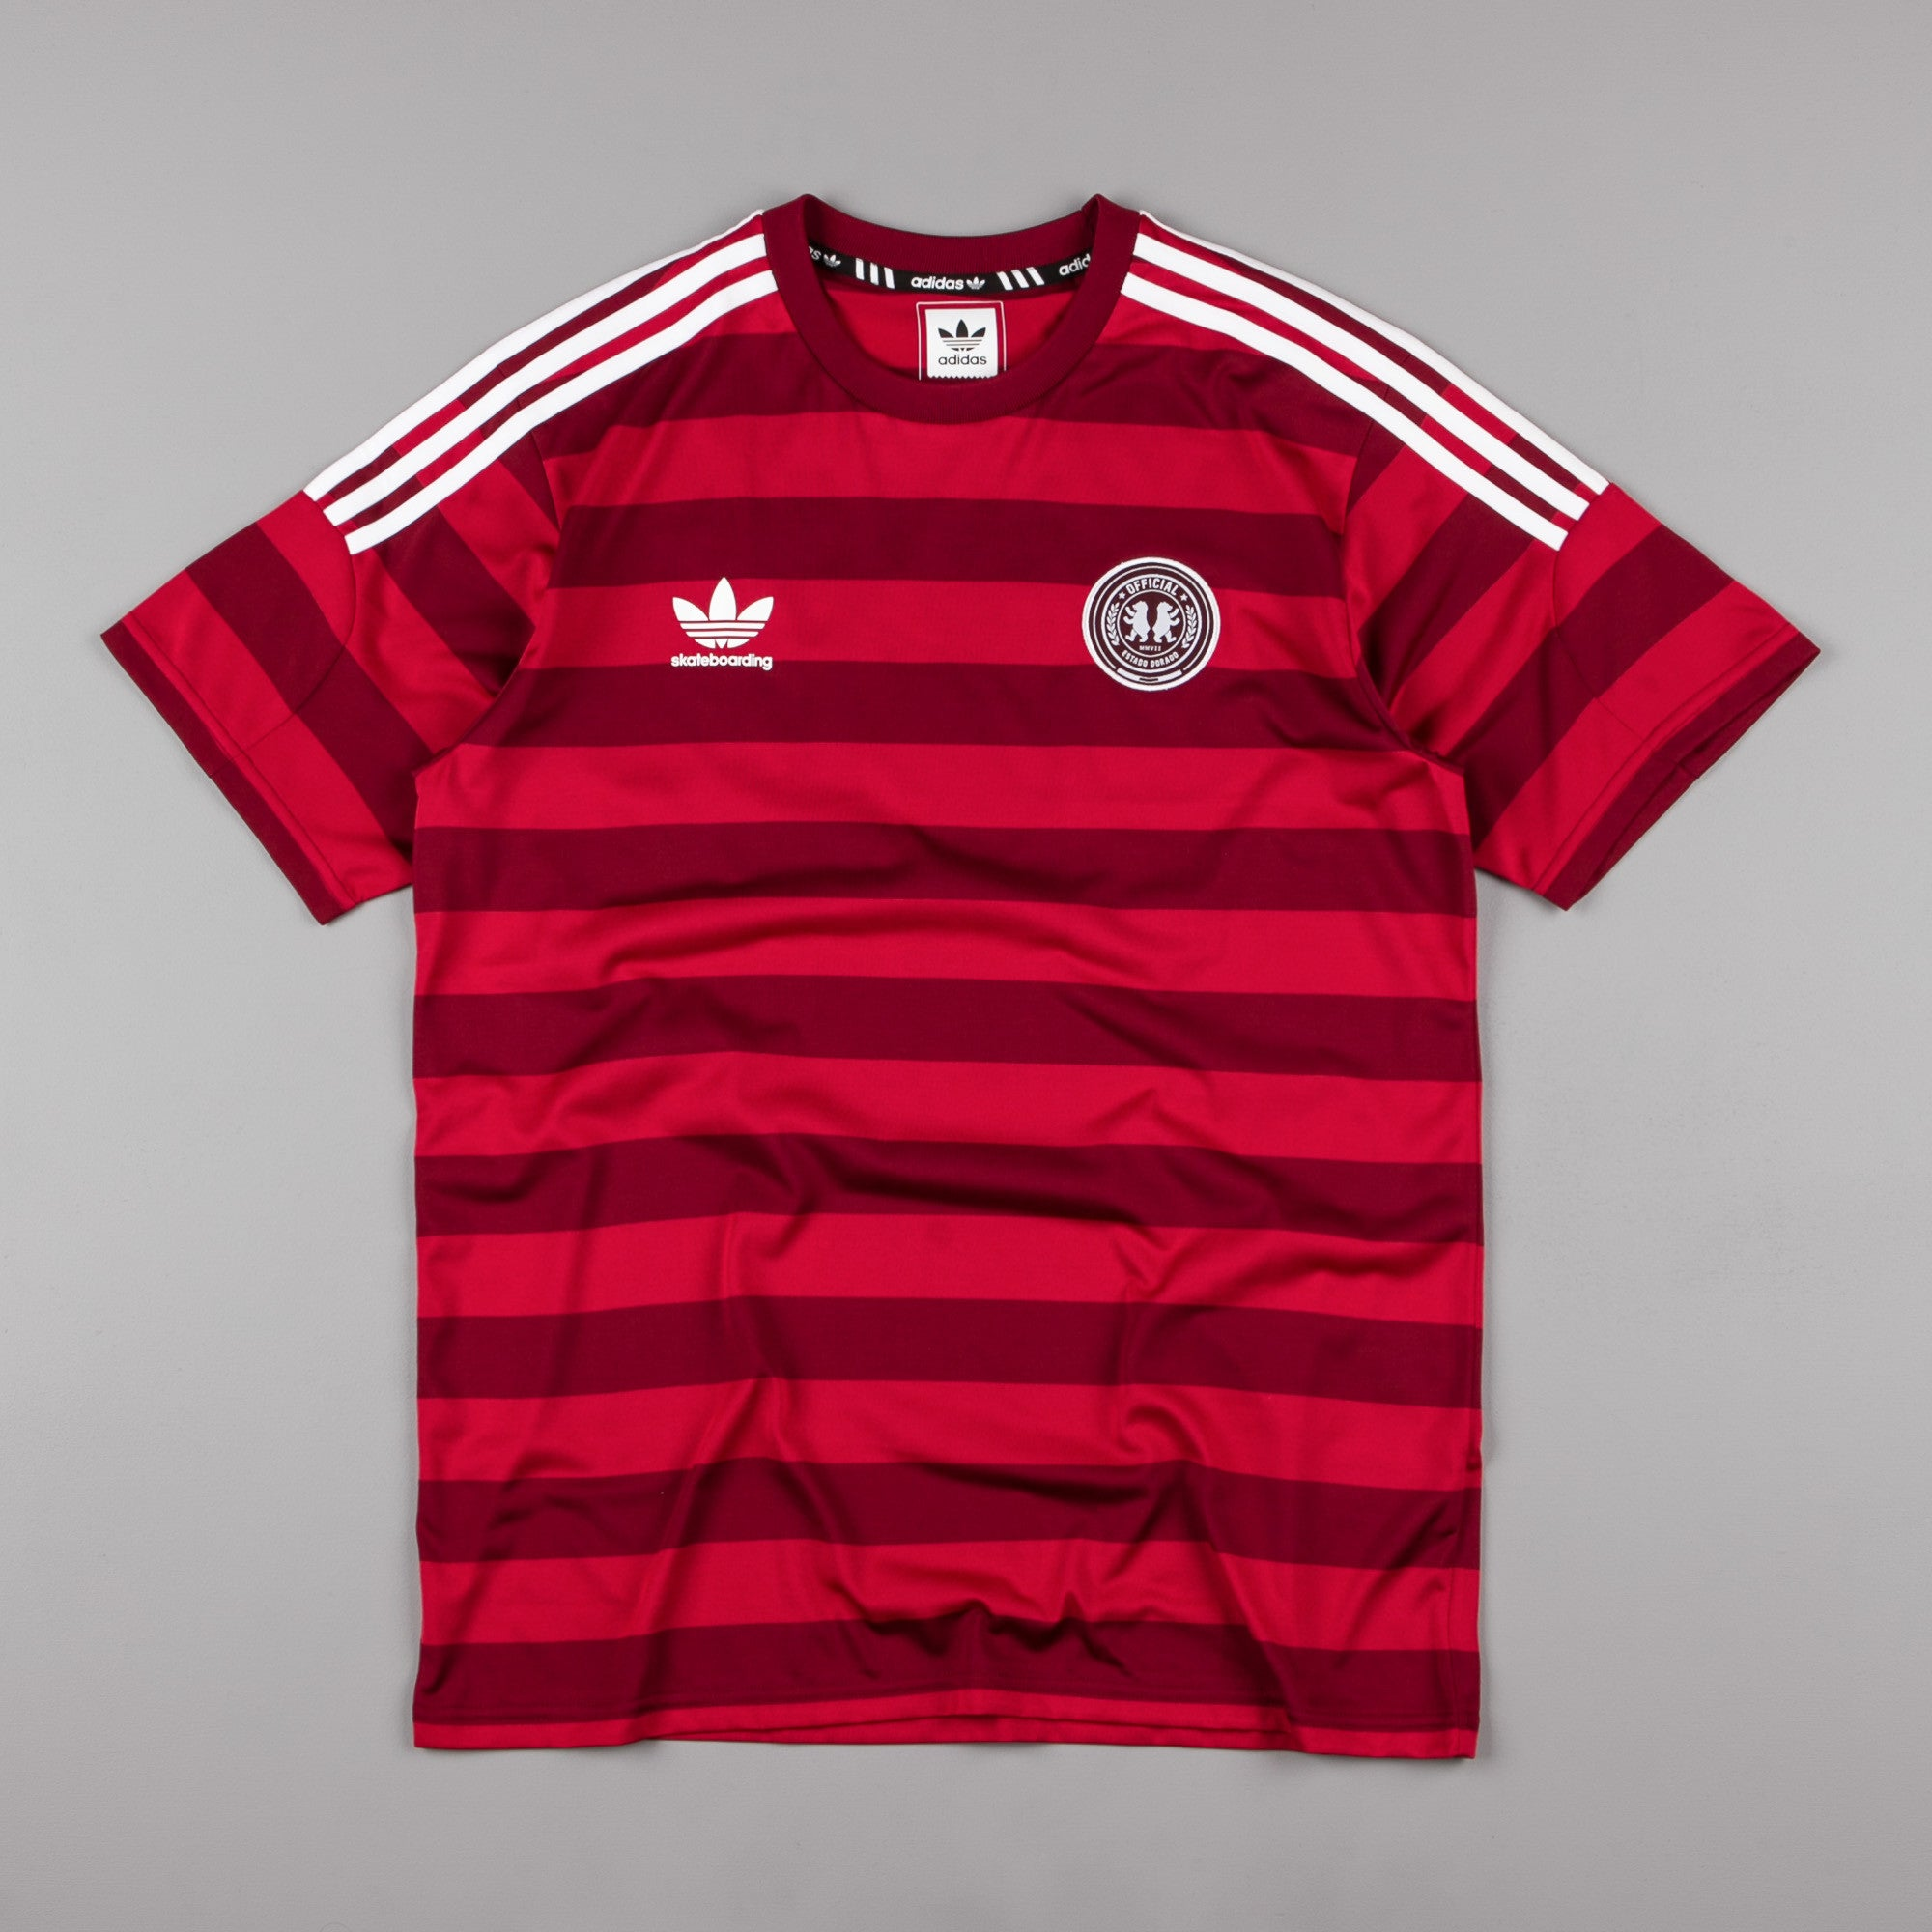 Adidas Official Jersey - Collegiate Burgundy